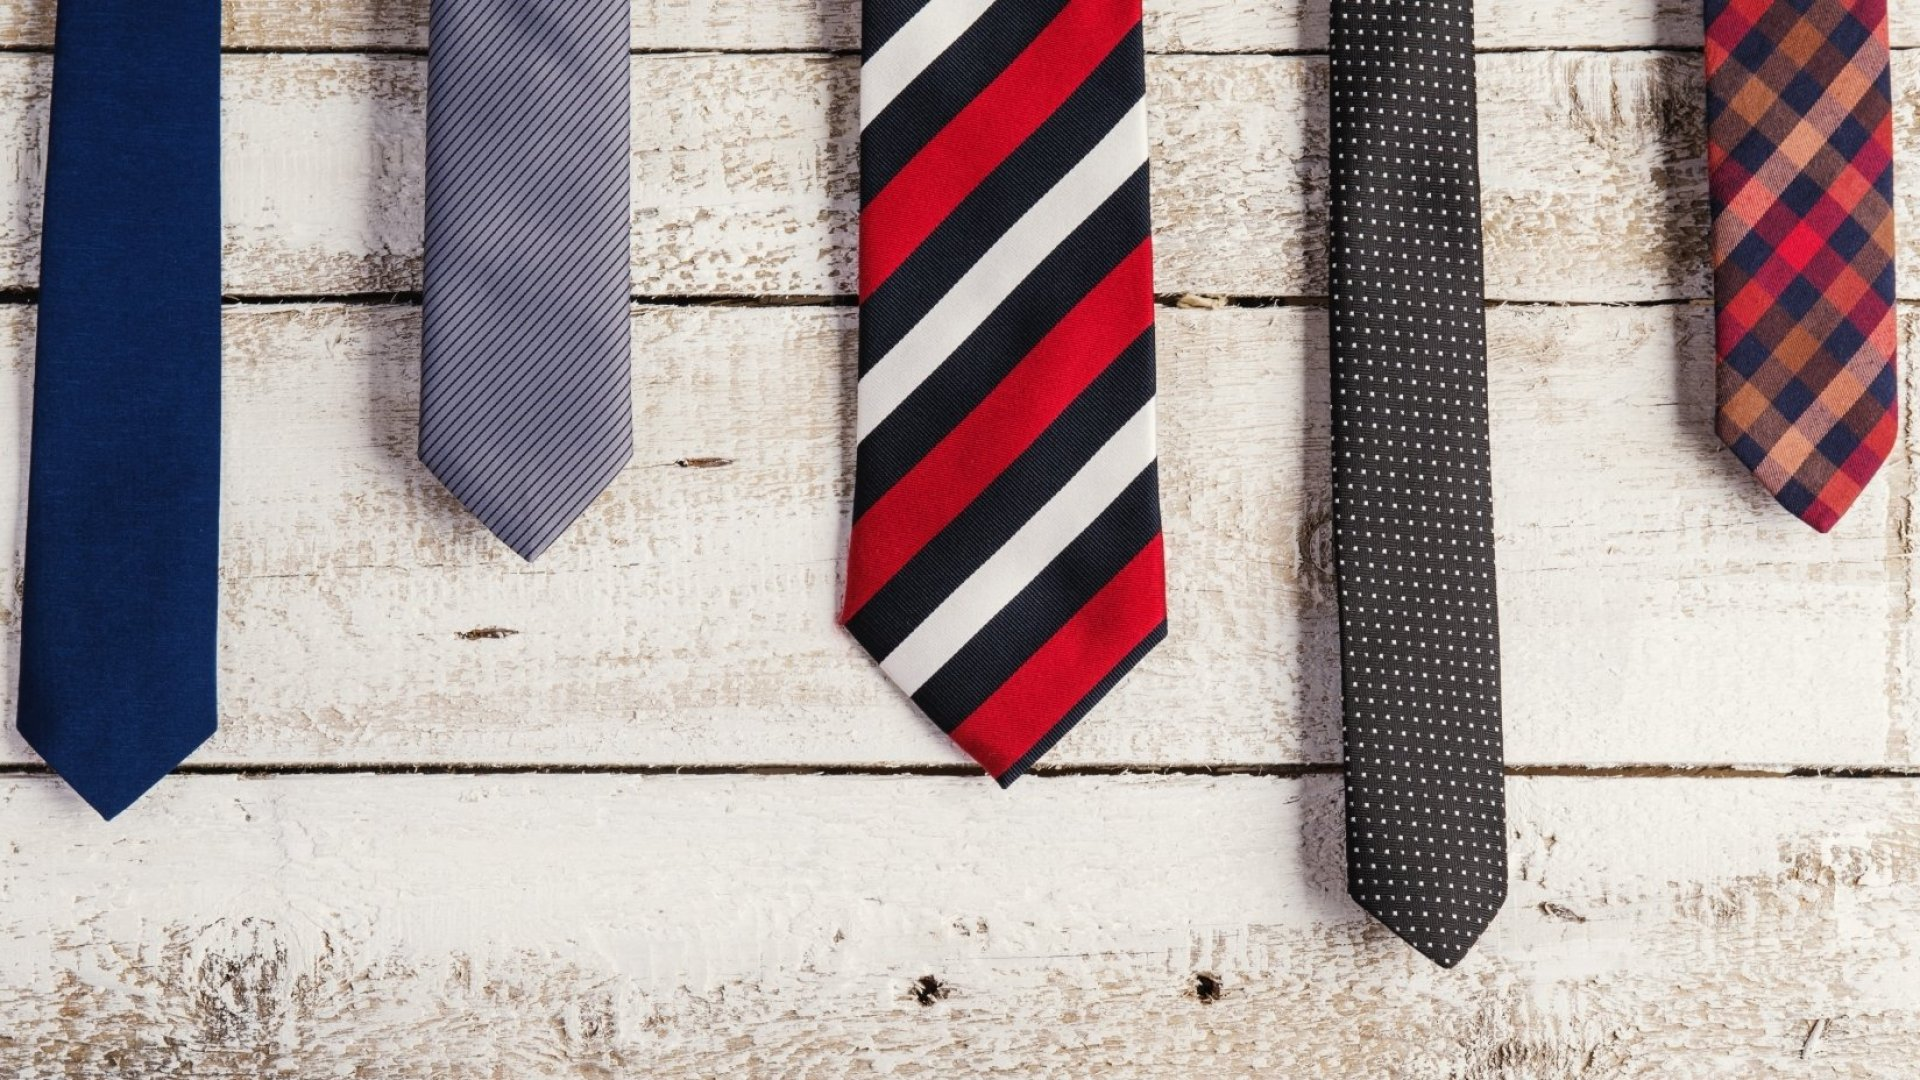 Wearing Ties to Work? This Company Wants You to Stop Immediately